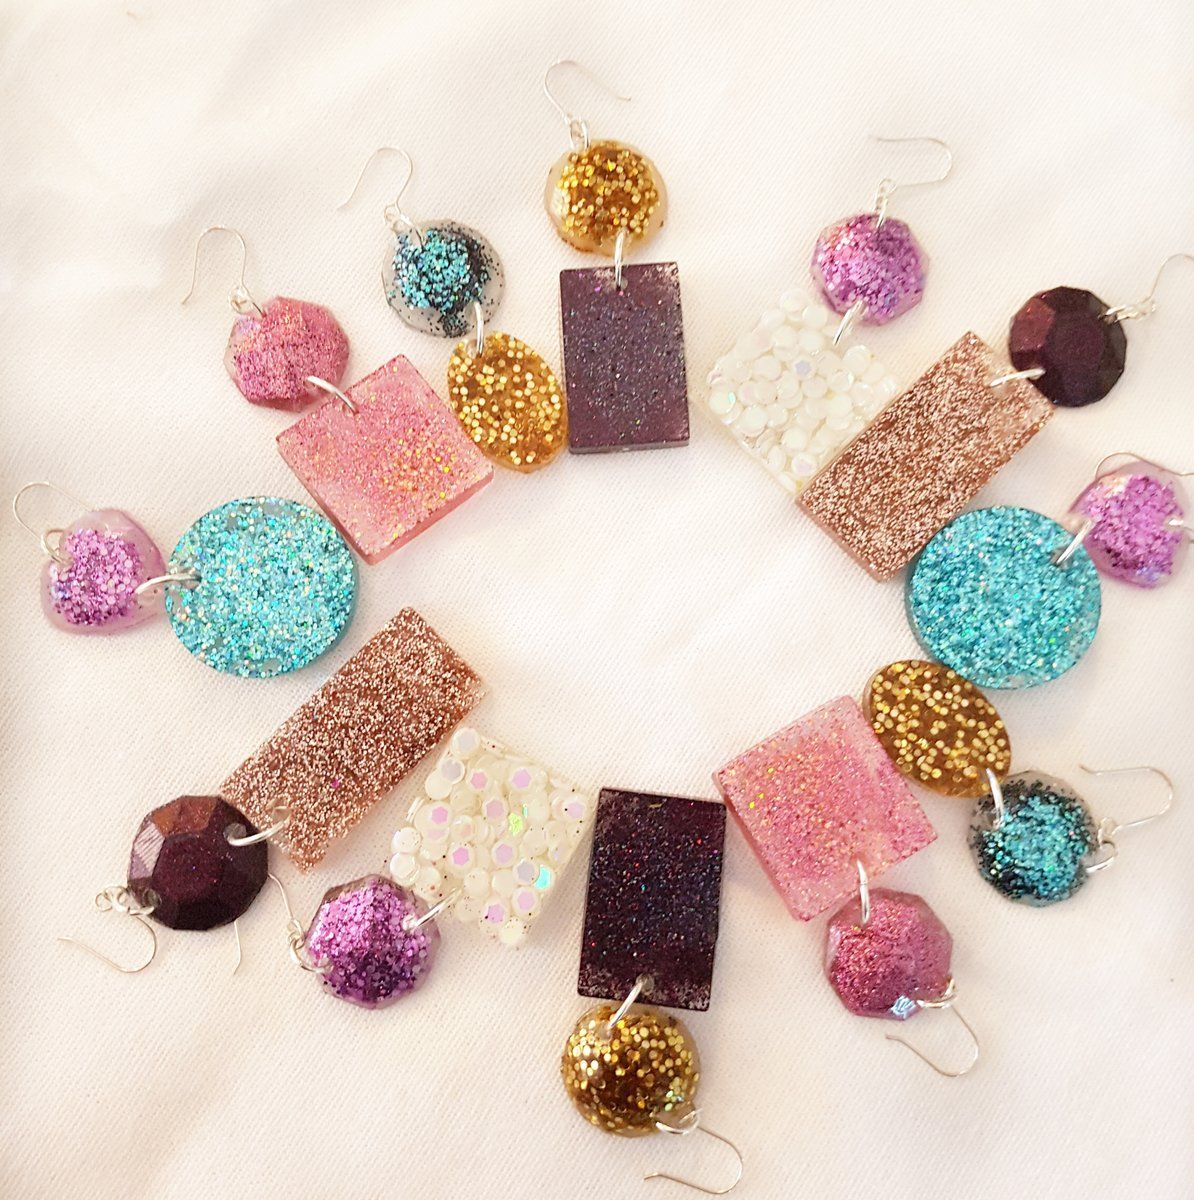 Handcrafted resin earrings using glitter the perfect